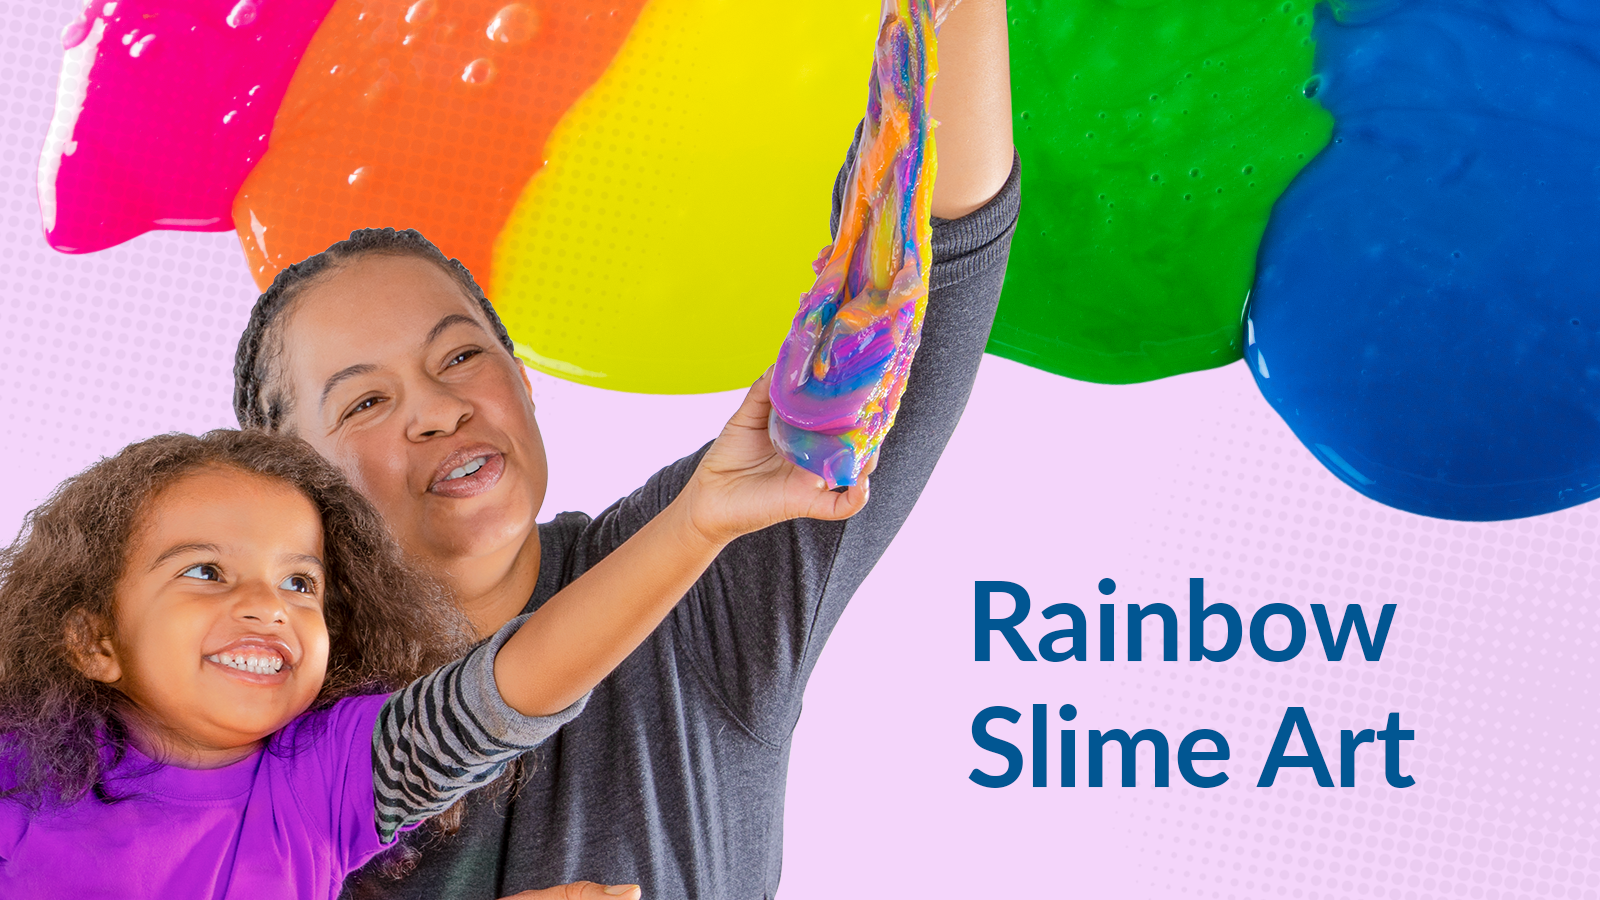 Rainbow Slime Art